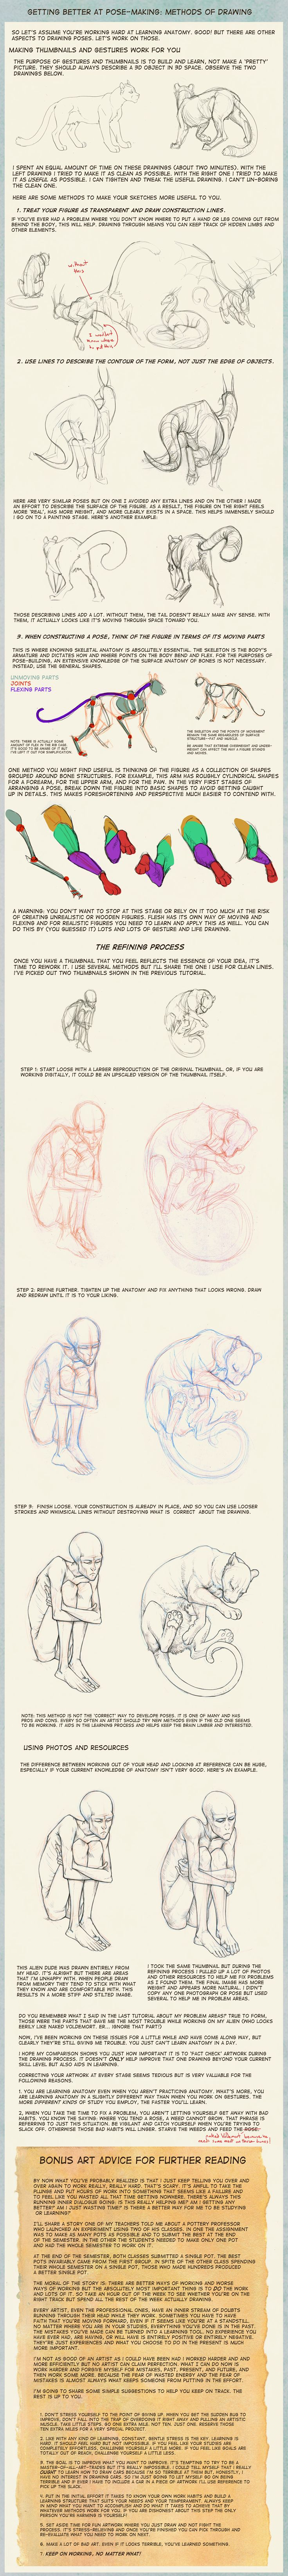 Poses: methods of drawing by hibbary.deviantart.com on @deviantART   ★ || CHARACTER DESIGN REFERENCES (www.facebook.com/CharacterDesignReferences & pinterest.com/characterdesigh) • Love Character Design? Join the Character Design Challenge (link→ www.facebook.com/groups/CharacterDesignChallenge) Share your unique vision of a theme every month, promote your art and make new friends in a community of over 25.000 artists! || ★